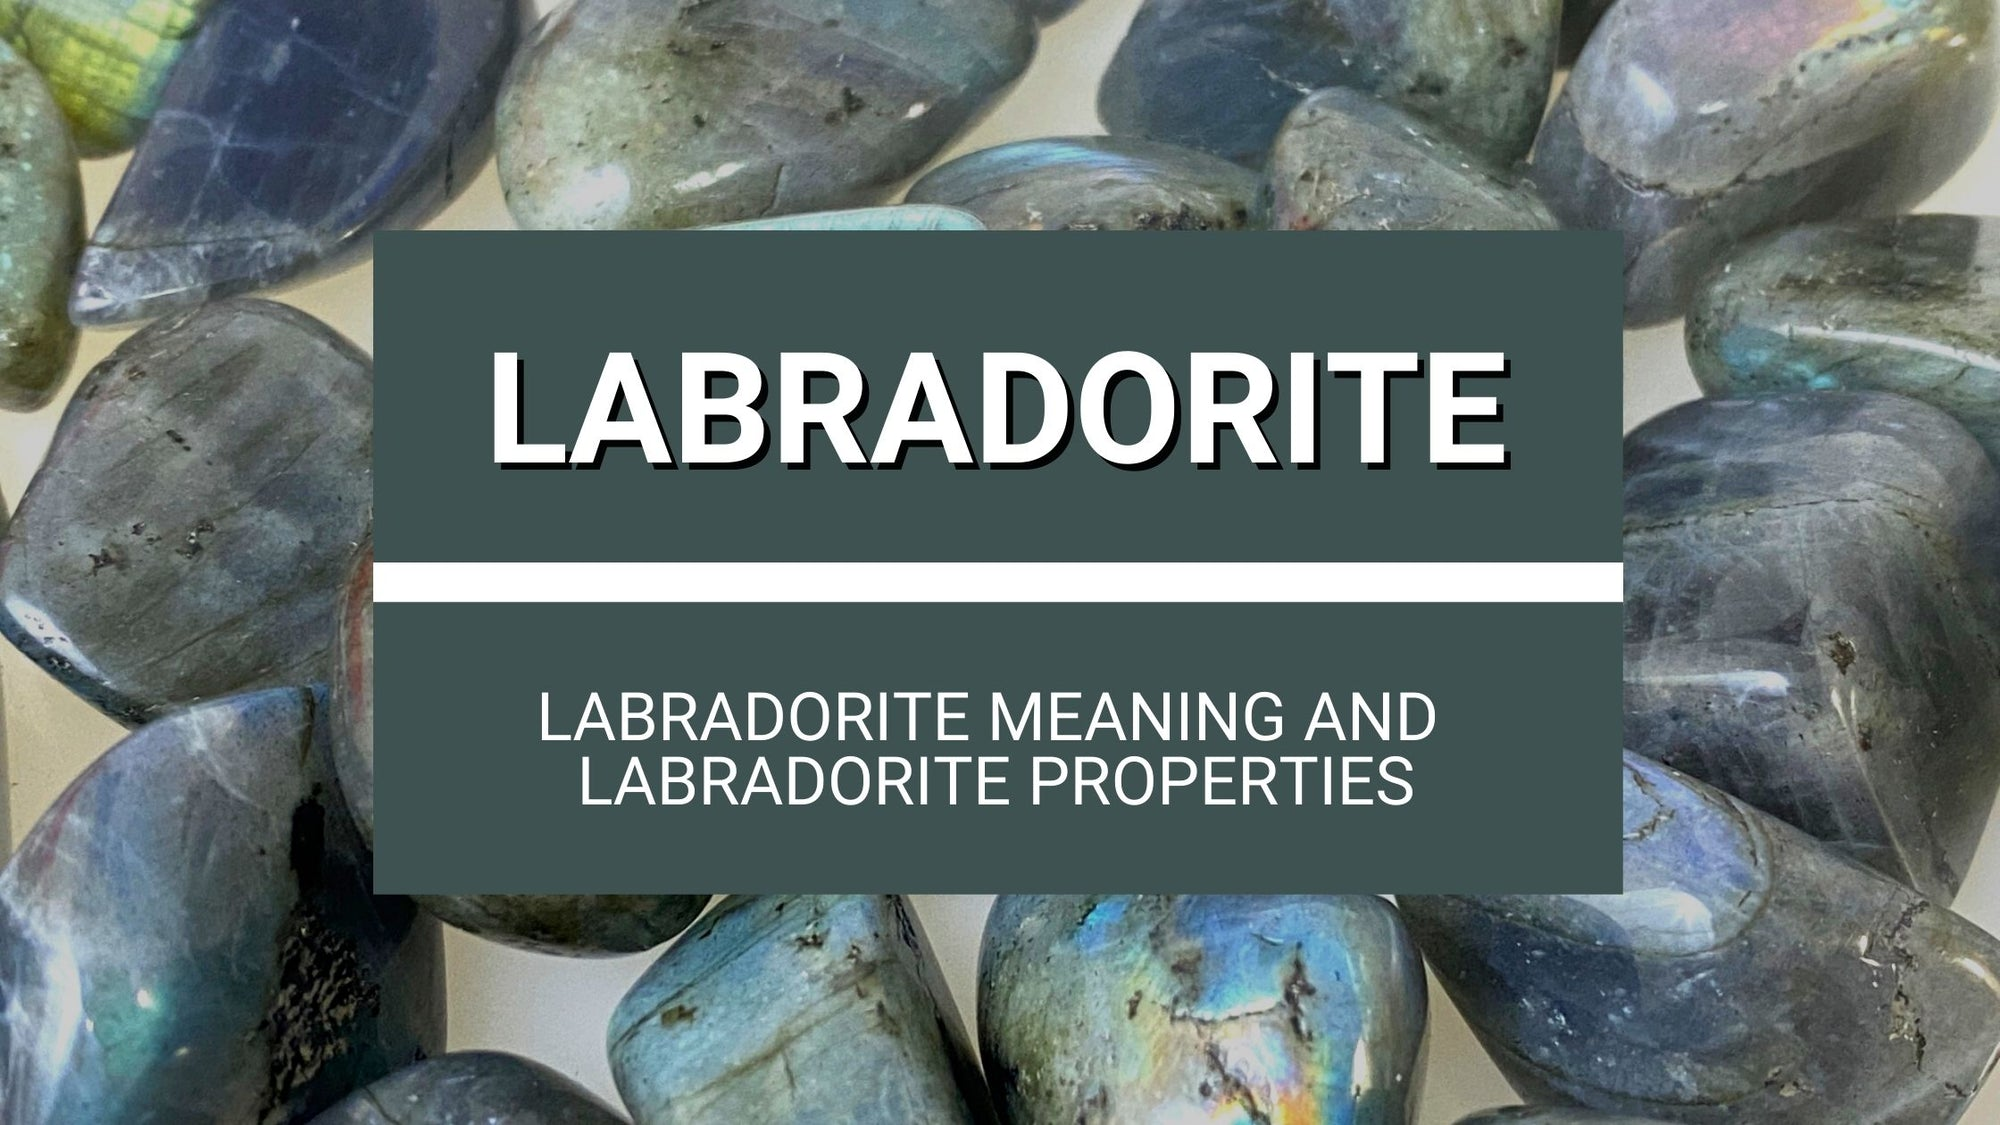 Labradorite Meaning and Labradorite Properties